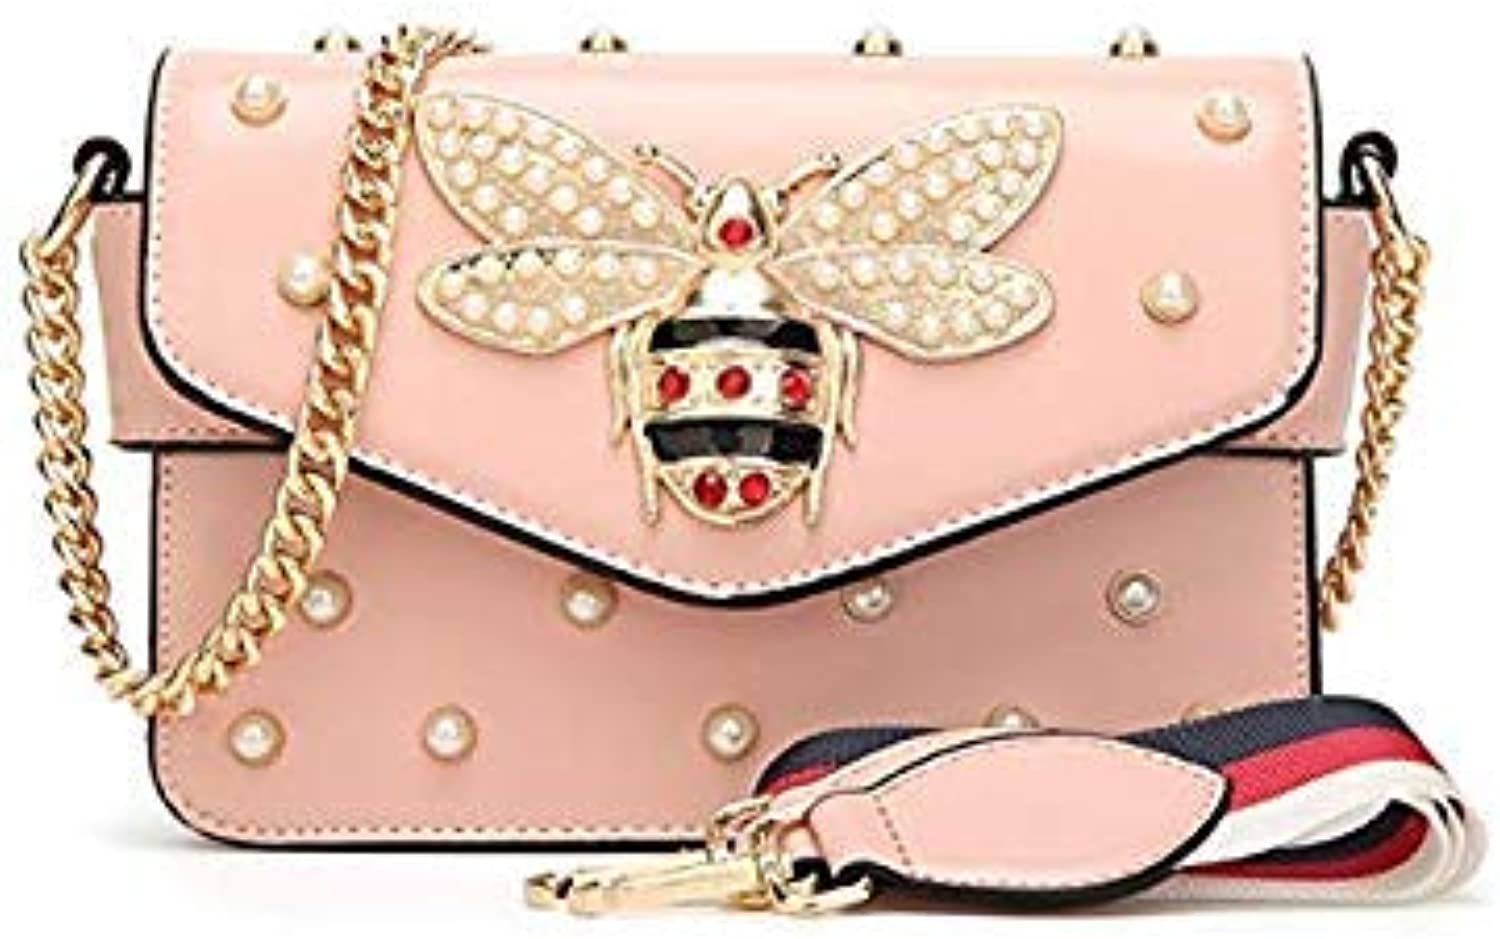 Bloomerang Fashion Women Bags New Design Girls' Shoulder Bags Star with The Same Ring Saddle Bag Quality PU Leather Lady Chain Handbags 6z color Pink